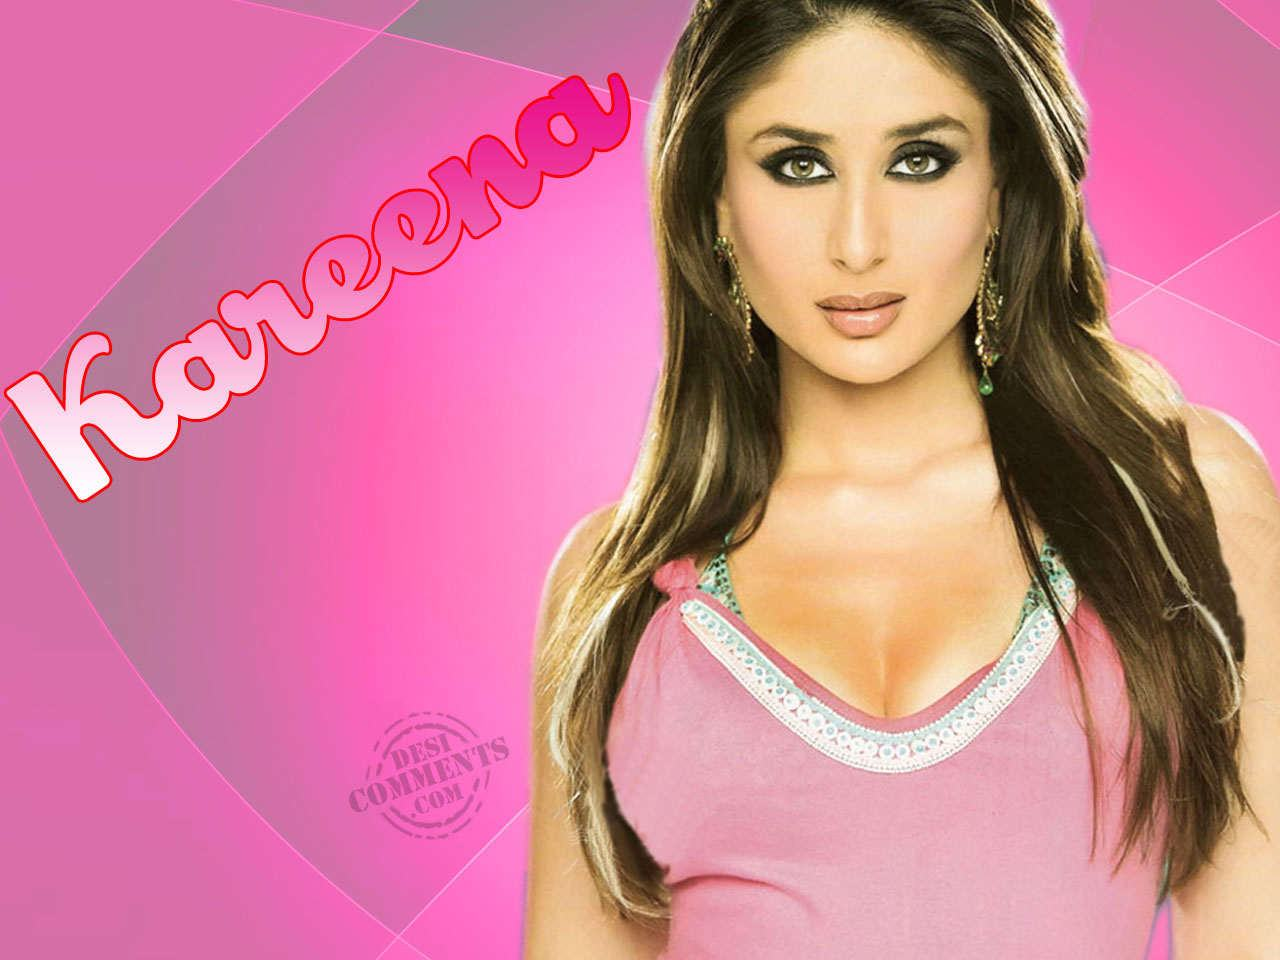 Pink Dress Category Kareena Kapoor Wallpapers wallpapers backgrounds 1280x960